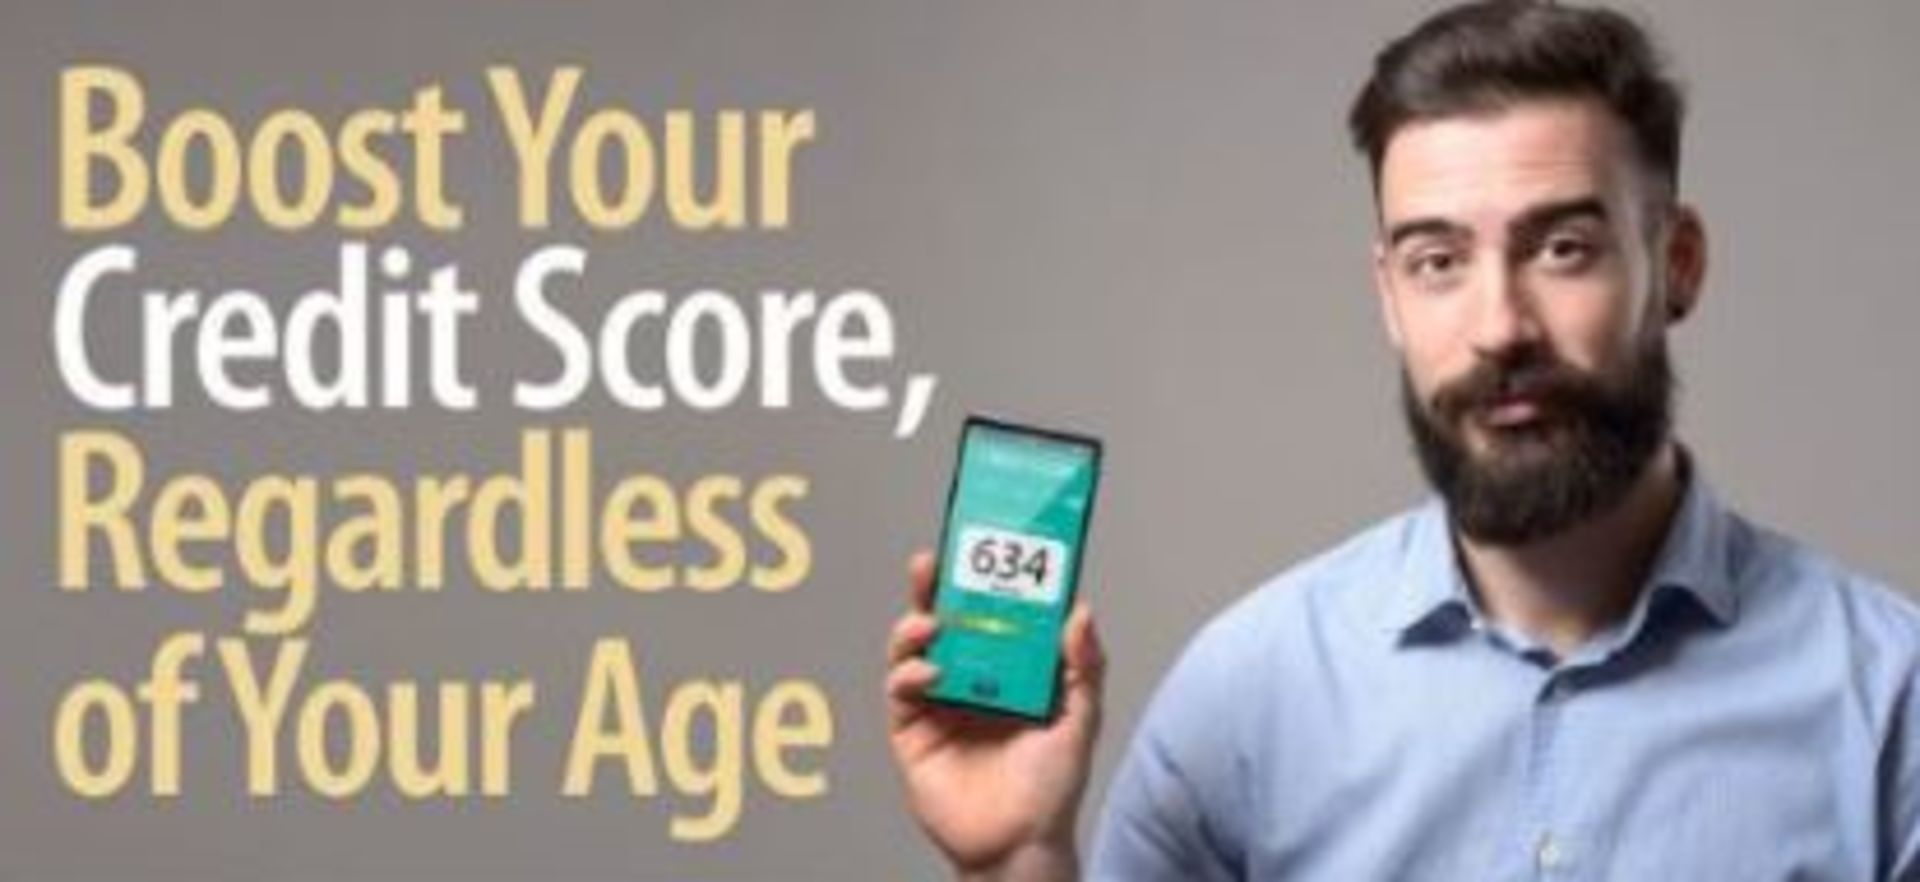 Boost Your Credit Regardless of Your Age